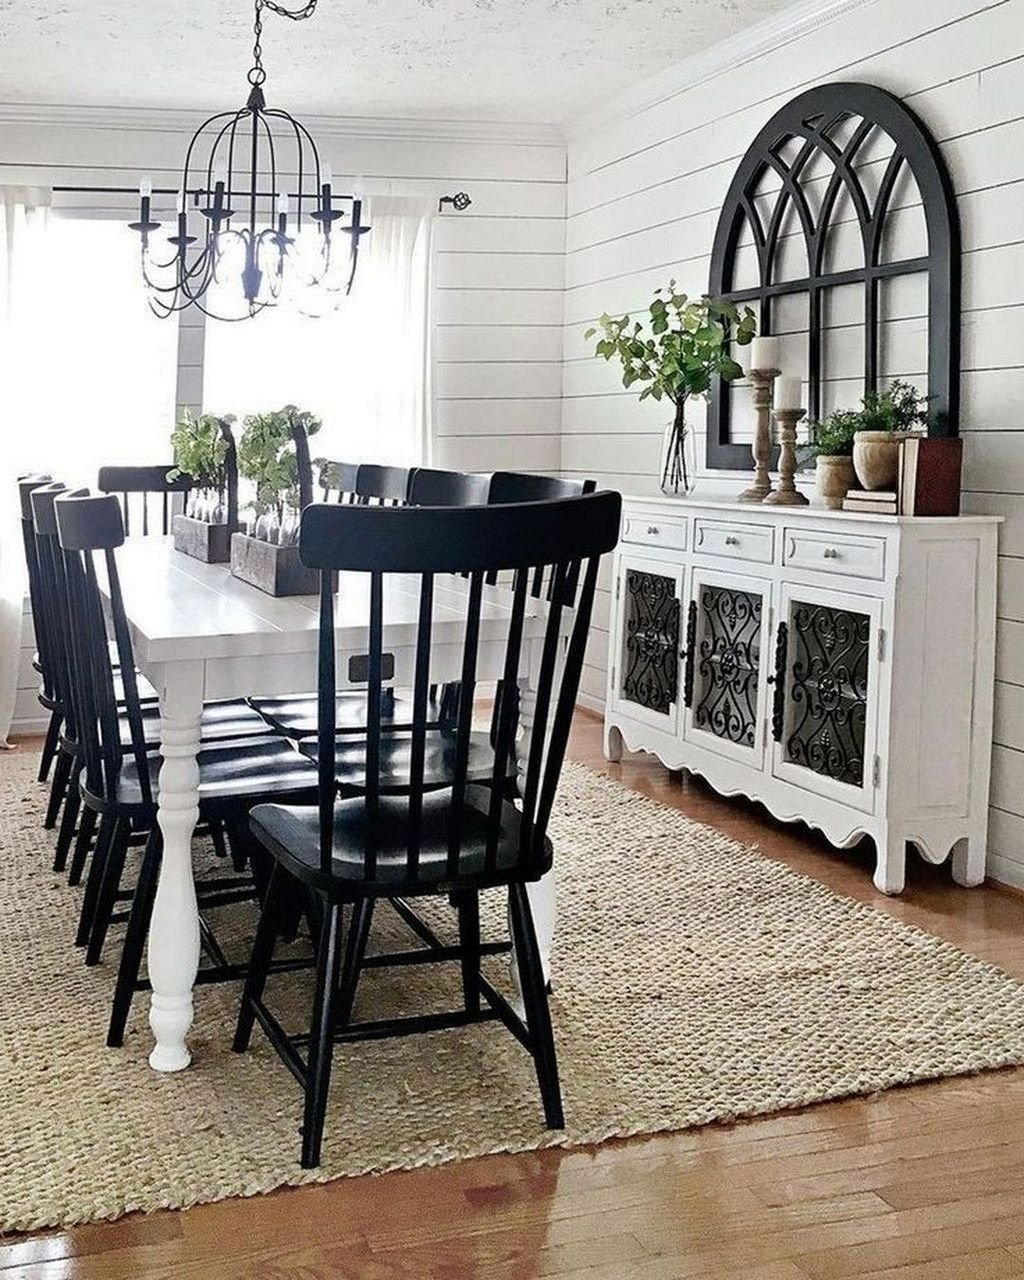 The Best Ideas To Decorate Interior Design With Farmhouse Style 18